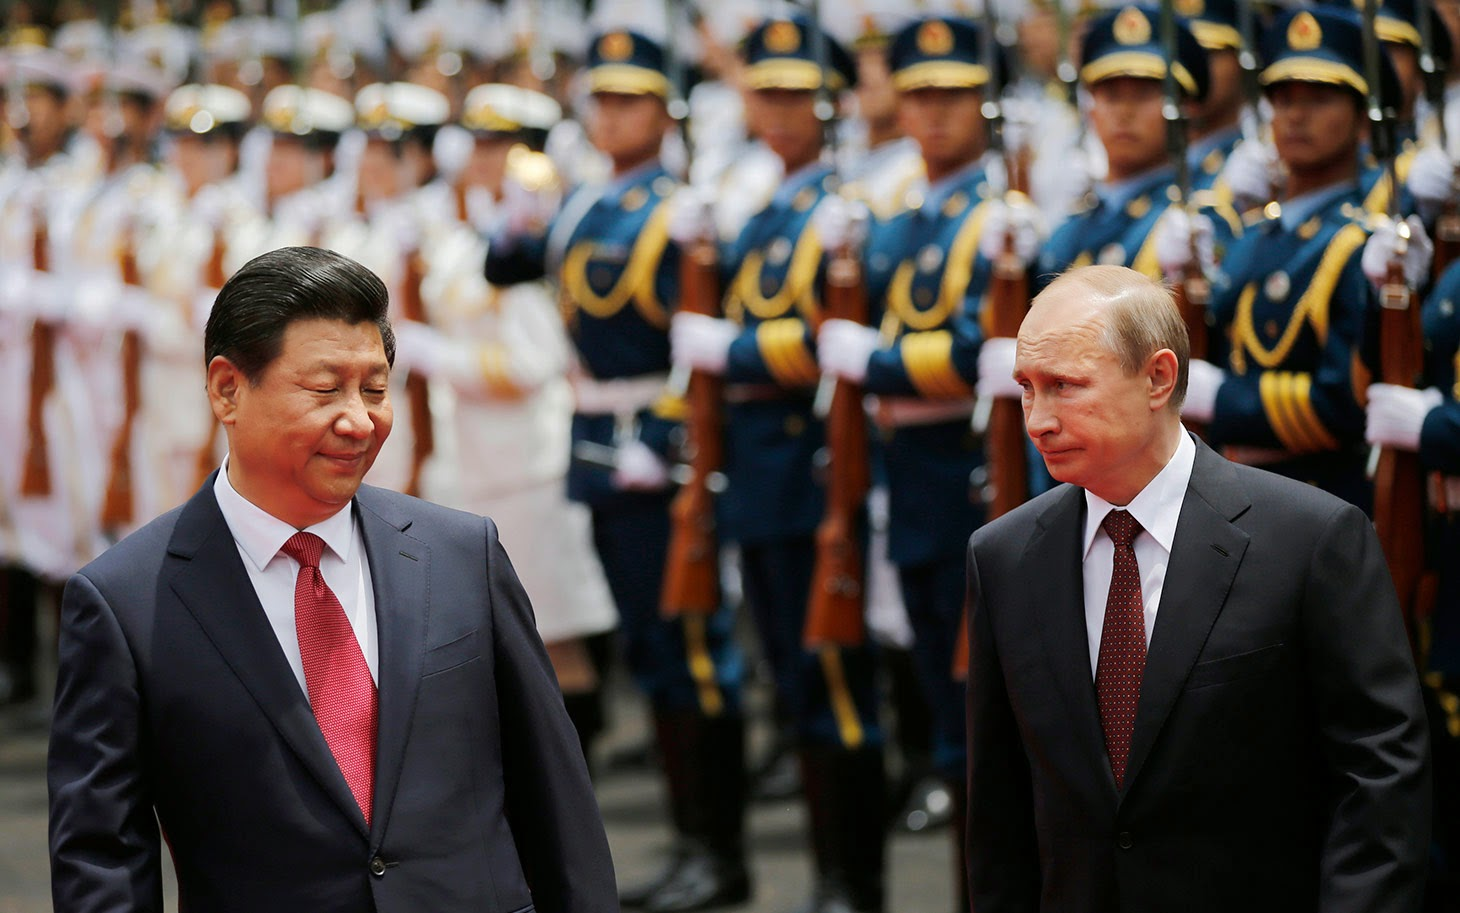 RUSSIA, CHINA SIGN DEAL TO BYPASS U.S. DOLLAR